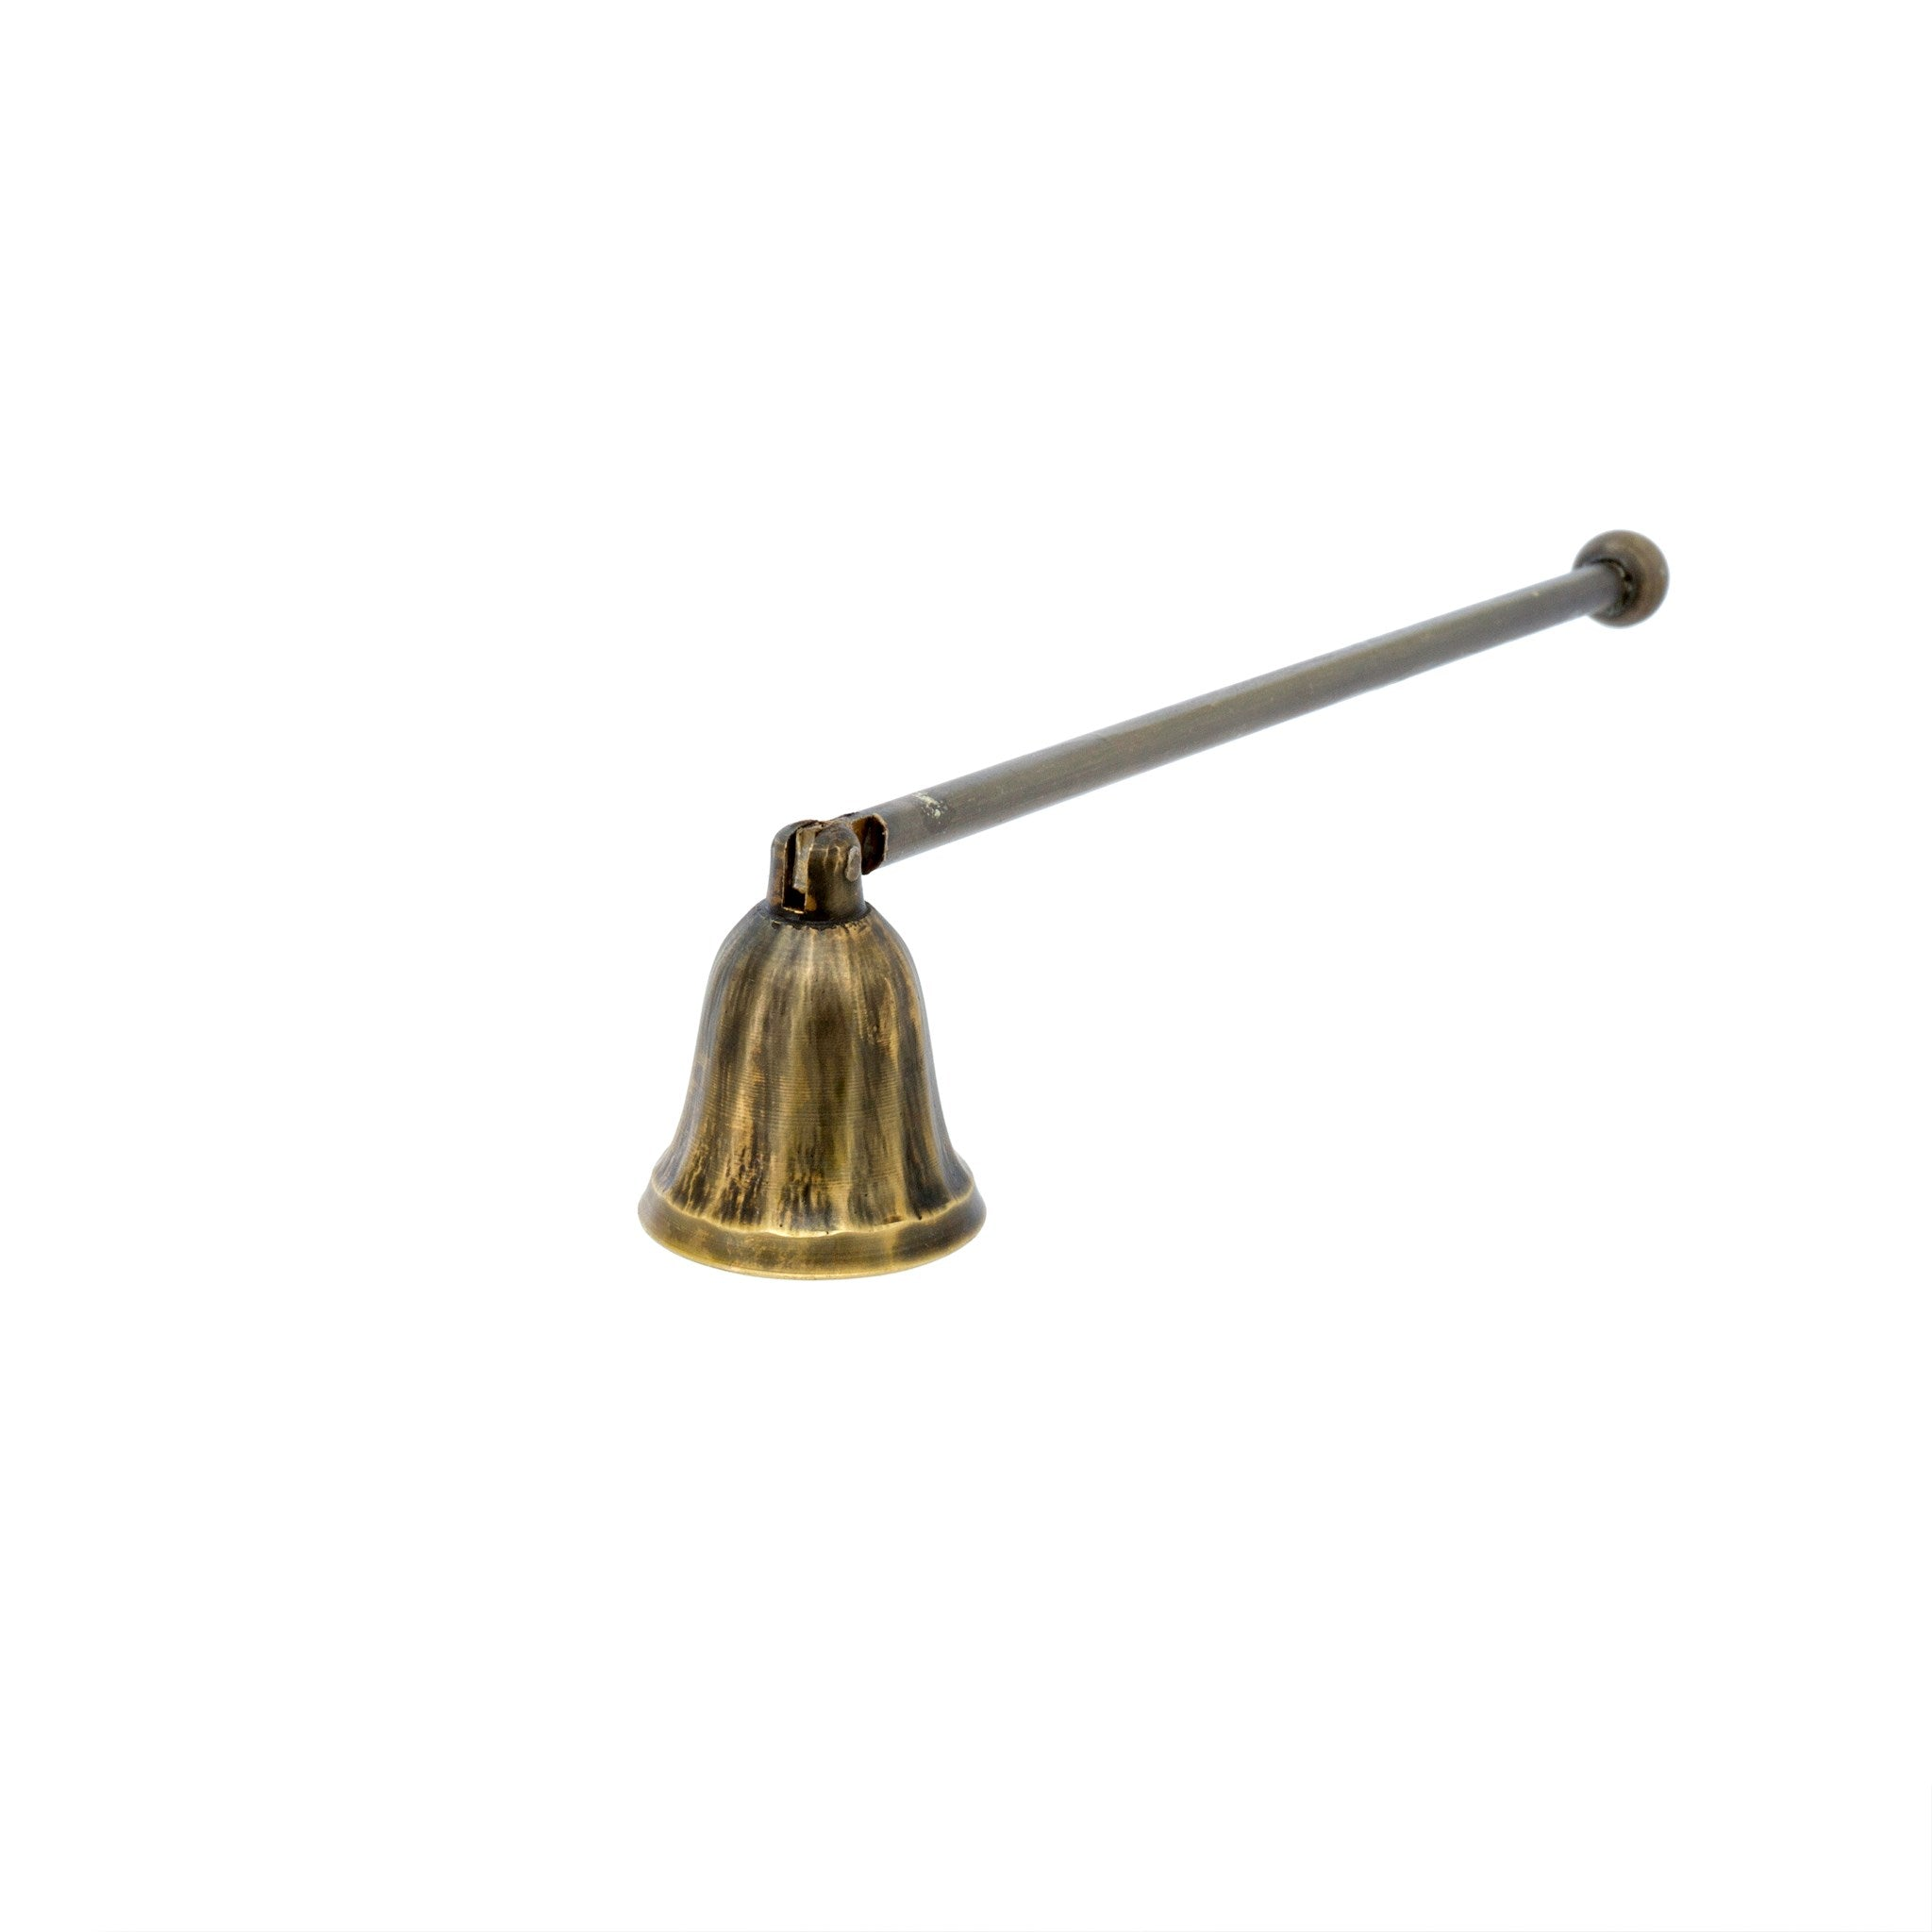 Antique Candle Snuffer